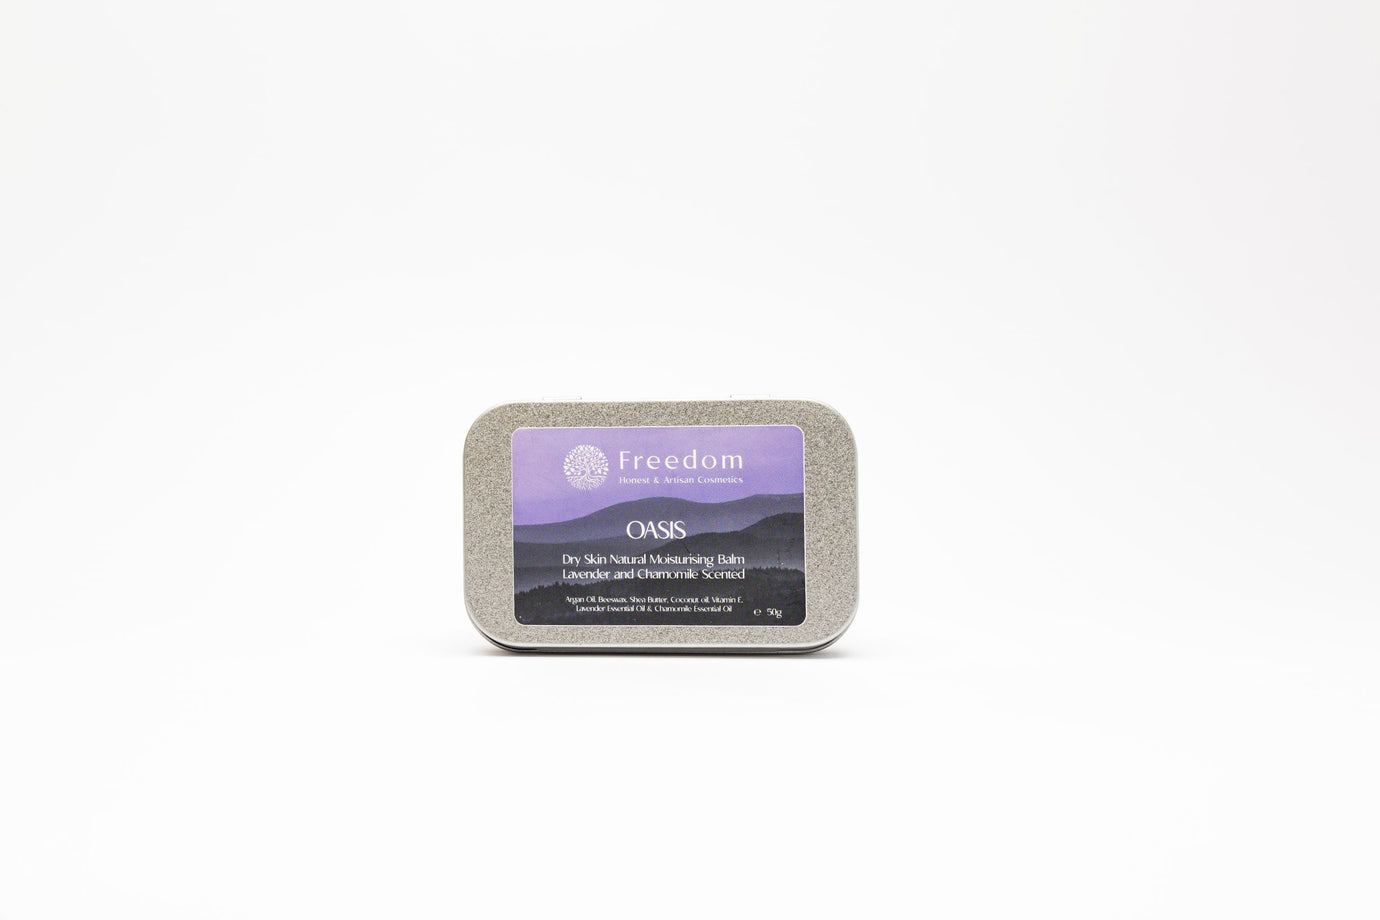 Oasis - Dry skin Natural Moisturising Balm - Lavender and Chamomile Scented